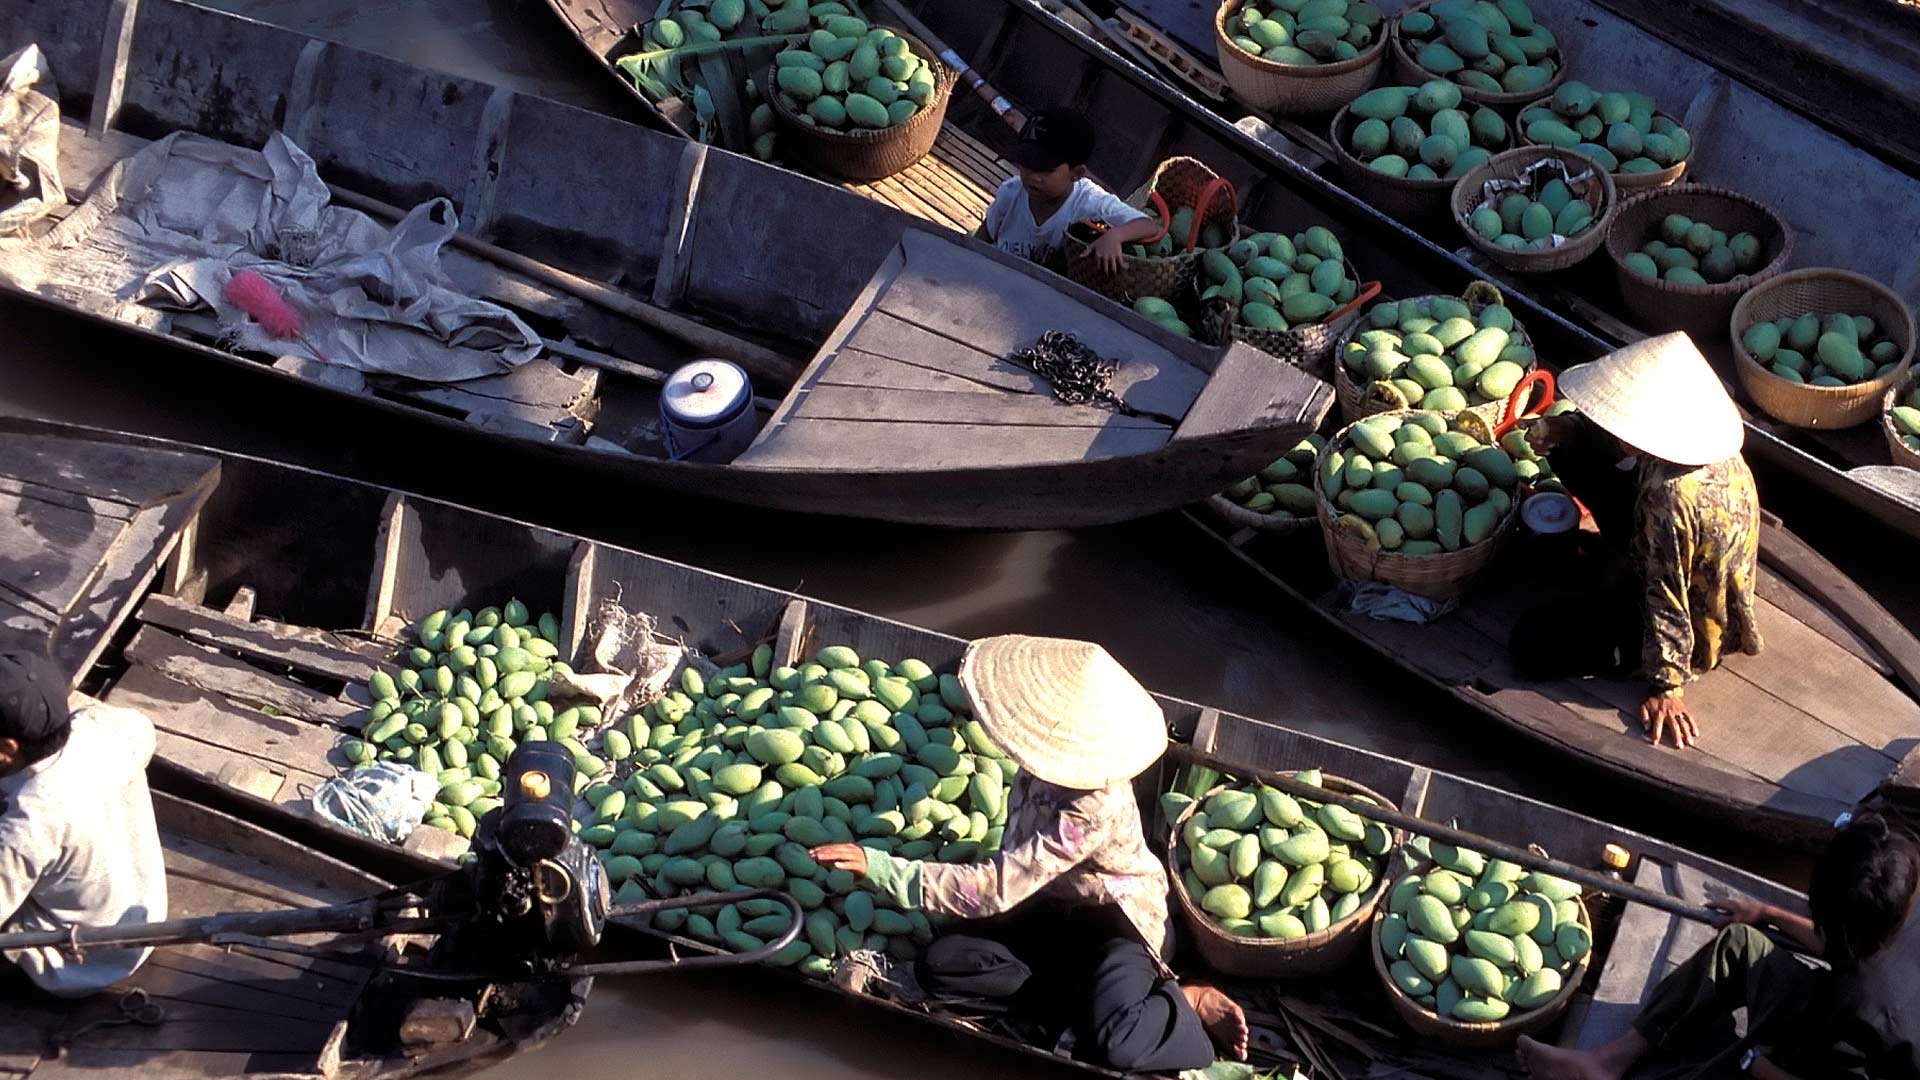 Boats laden with green mangos and other produce at a floating market on the Mekong River by My Tho, Mekong Delta, Long An, Vietnam